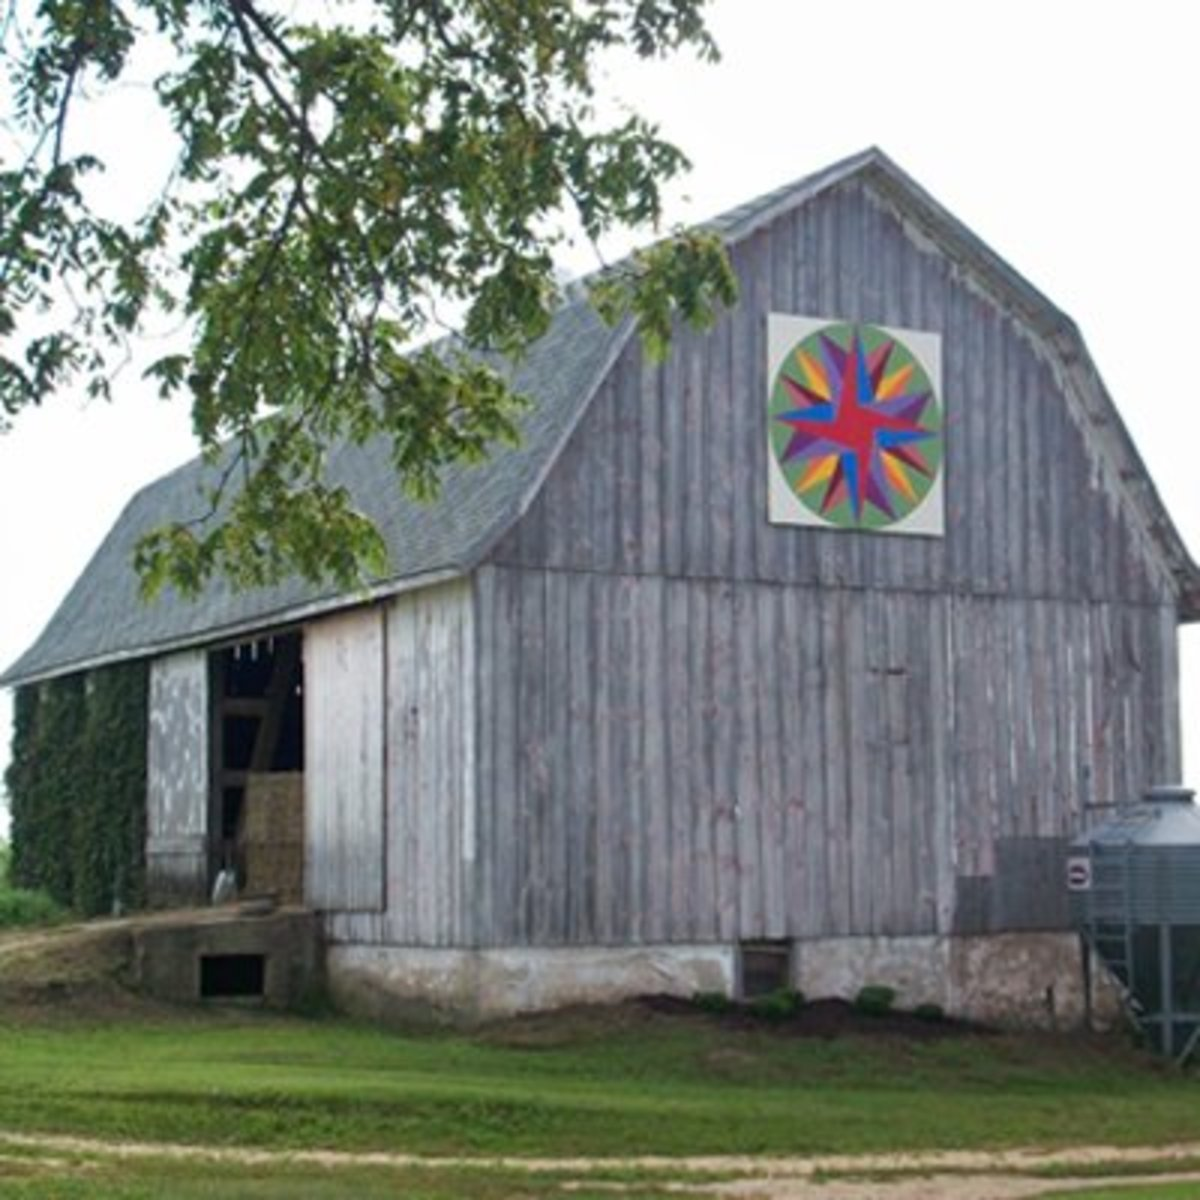 Quilt Patterns On Wisconsin Barns : Barn Quilts ... Covering Barns Across Rural America